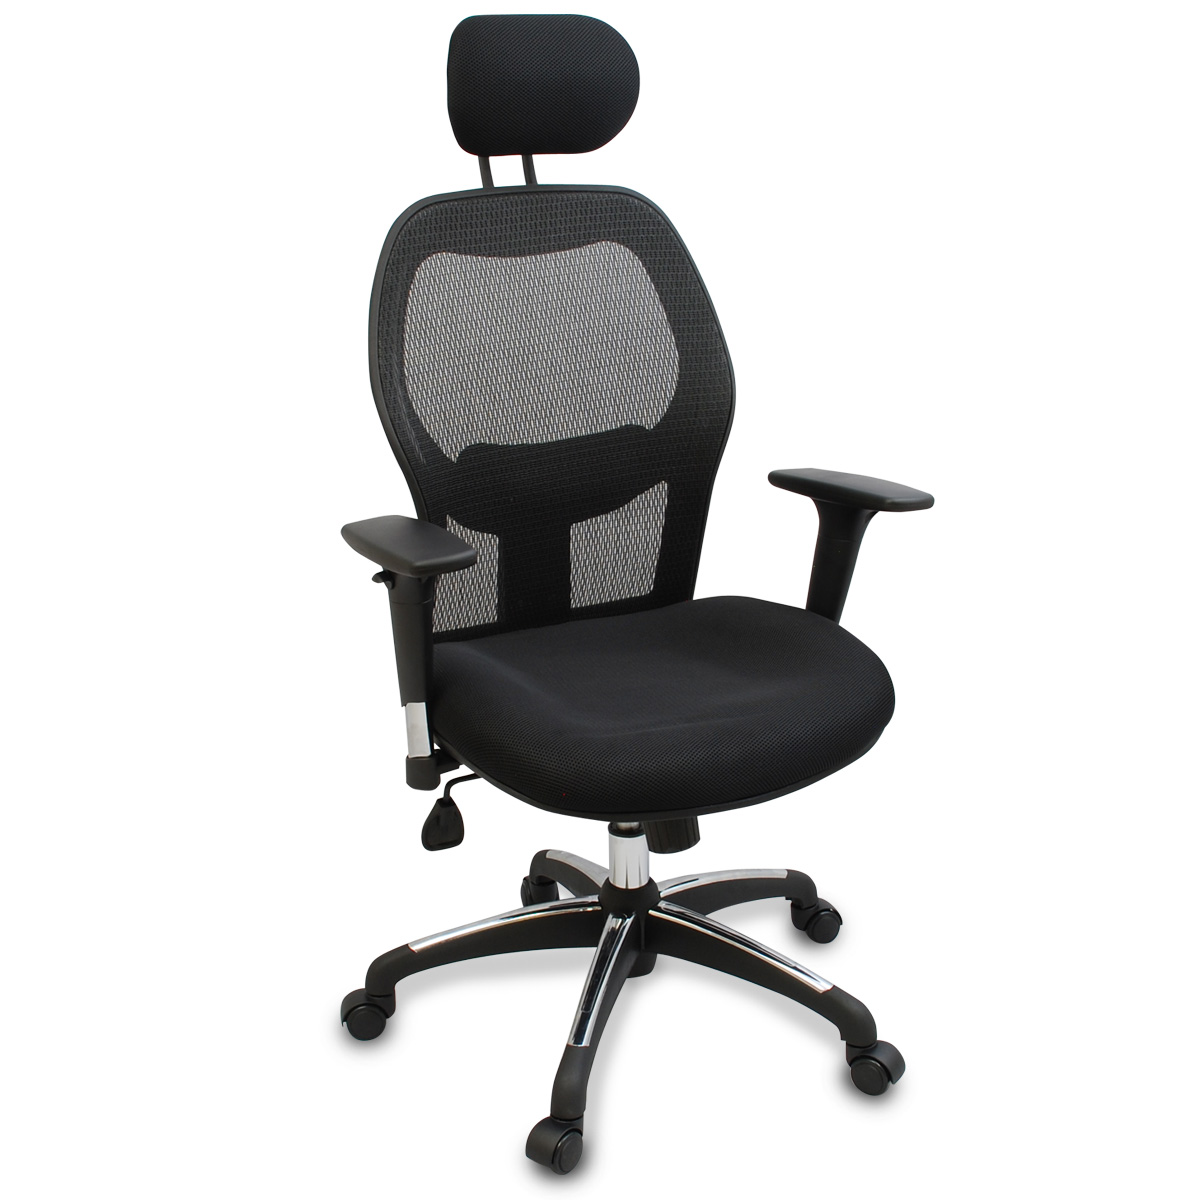 new mesh reclining office chair w no scuff rubber wheels for hardwood floors ebay. Black Bedroom Furniture Sets. Home Design Ideas